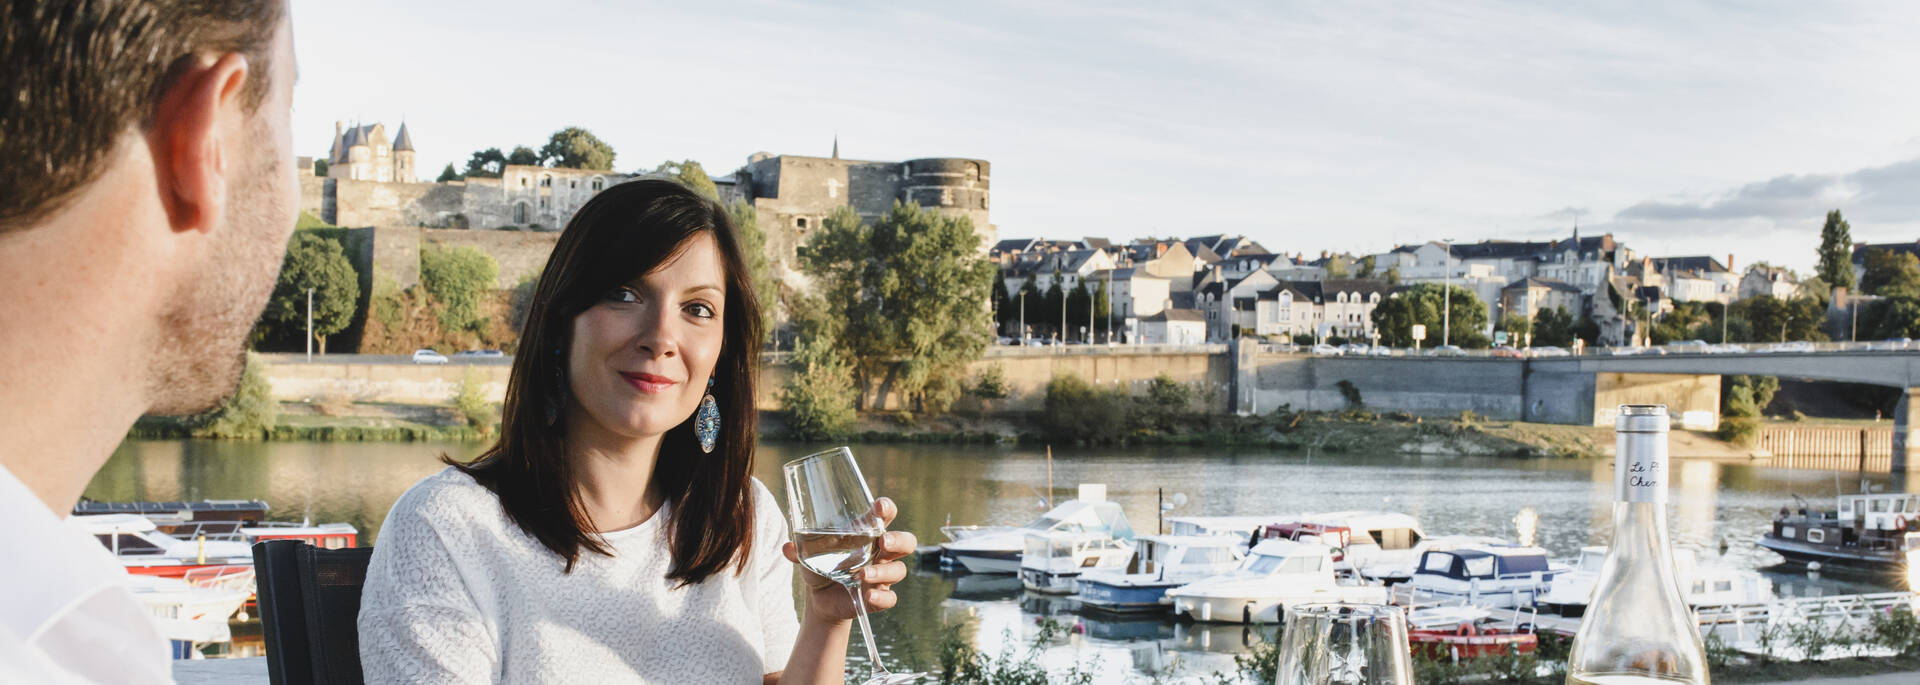 Apéro en bords de Maine, cale de la Savatte, le temps d'un week-end à deux à Angers © Jeremy Fiori